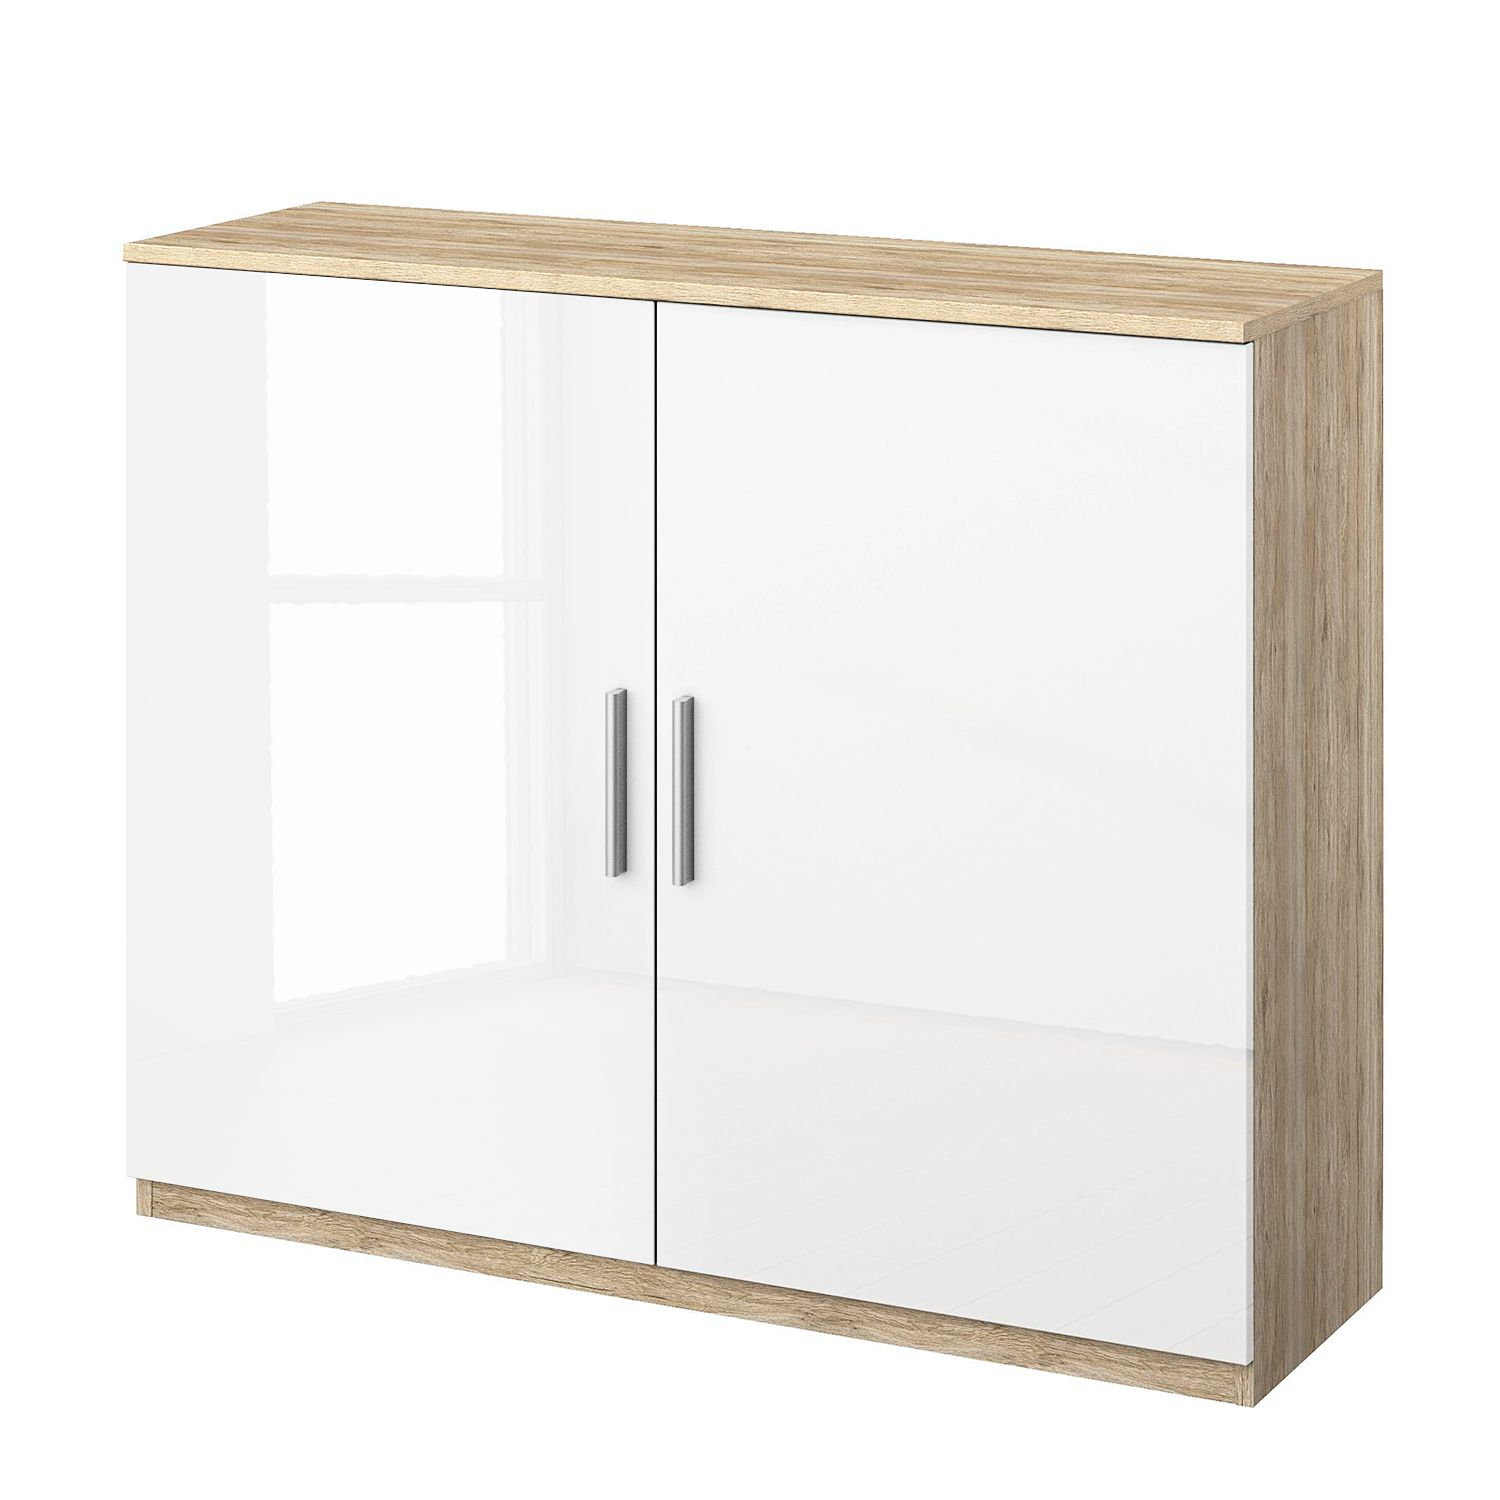 Commode Celle I - Imitation chêne de Sonoma / Blanc brillant, Rauch Packs